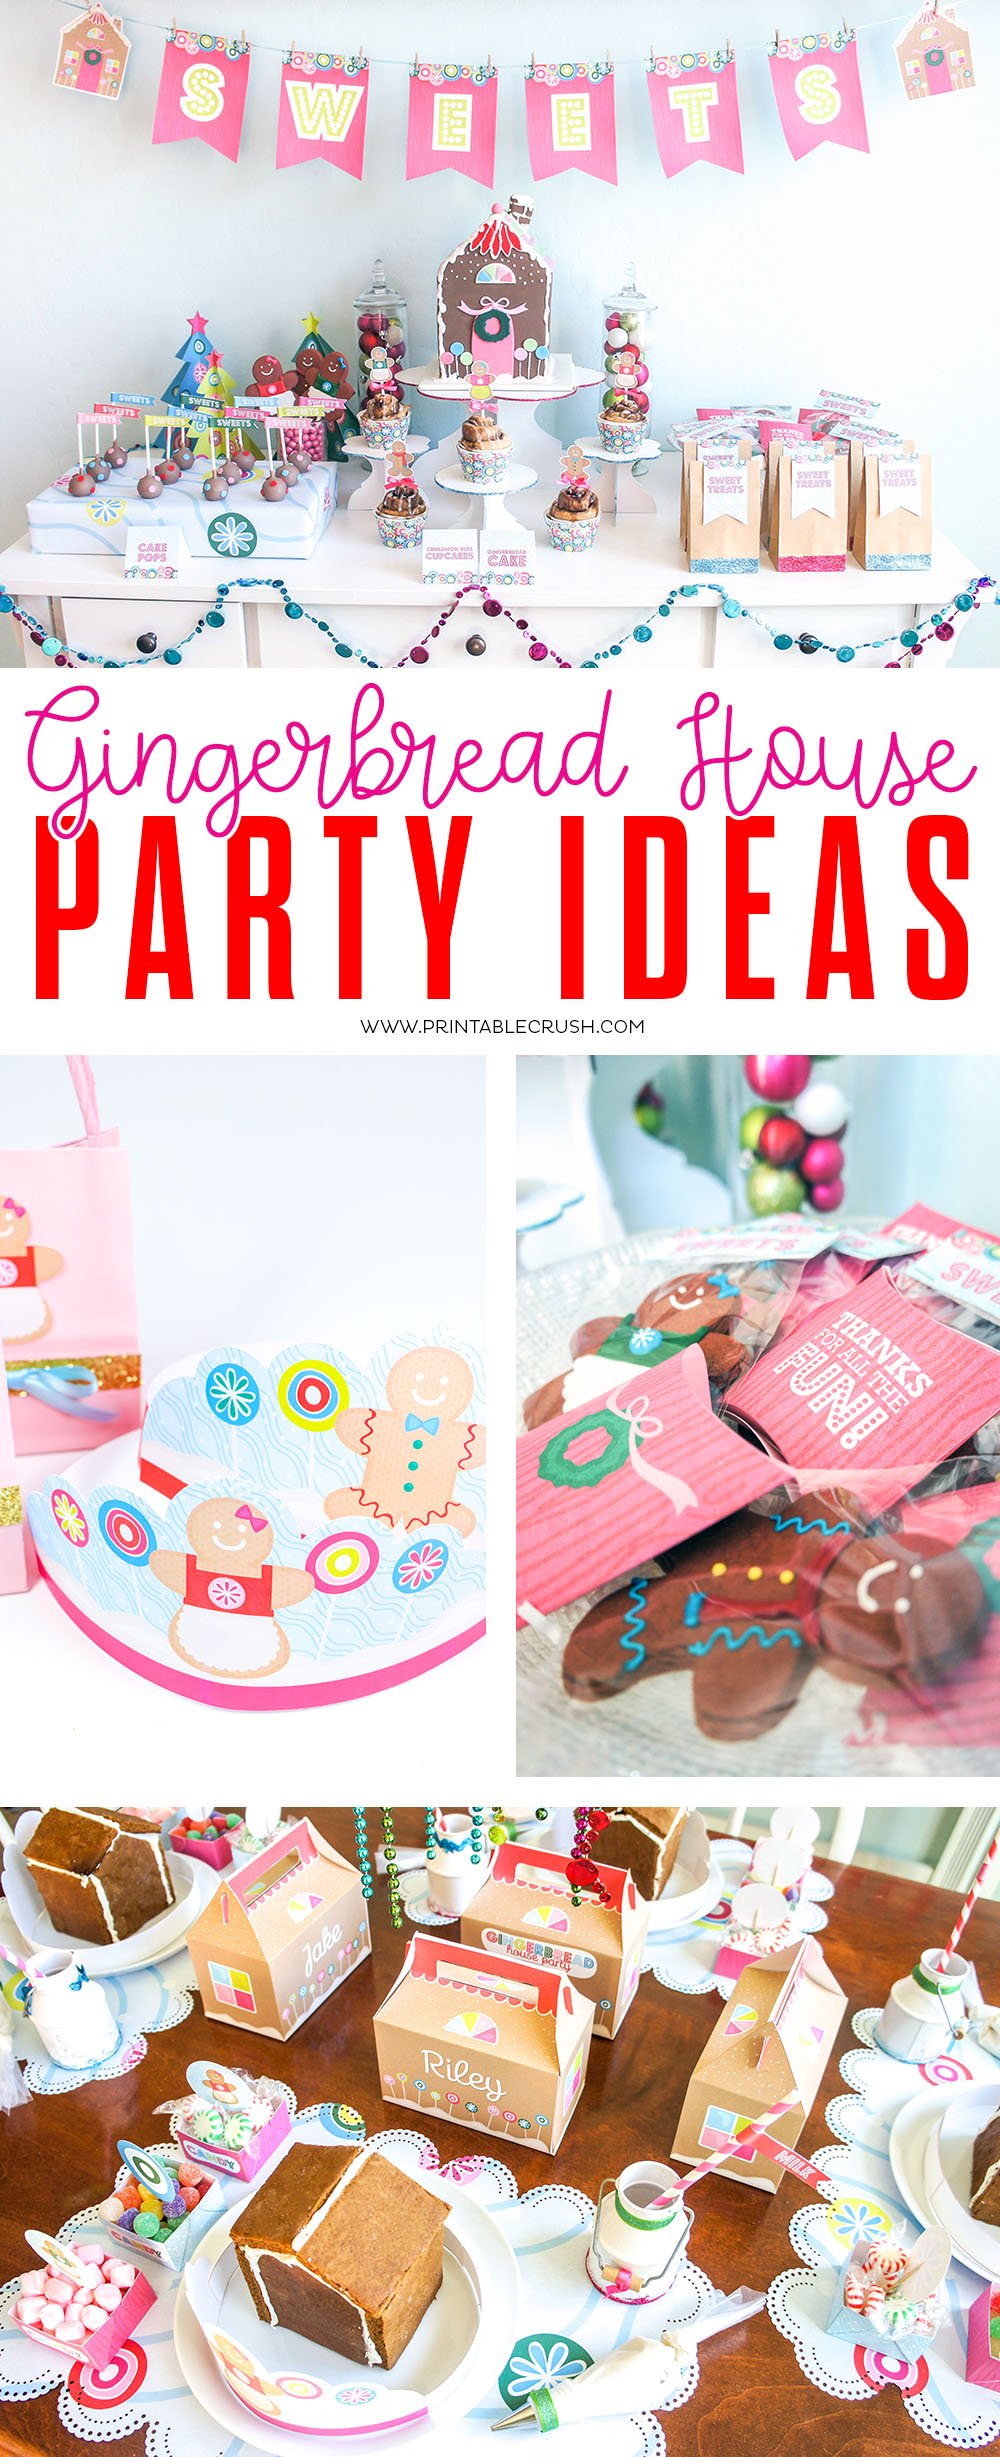 Your kids will love these Gingerbread House Party Ideas - such a fun holiday party! #gingerbreadhouse #gingerbreadhouseparty #christmasparty #holidayparty #gingerbreadprintables